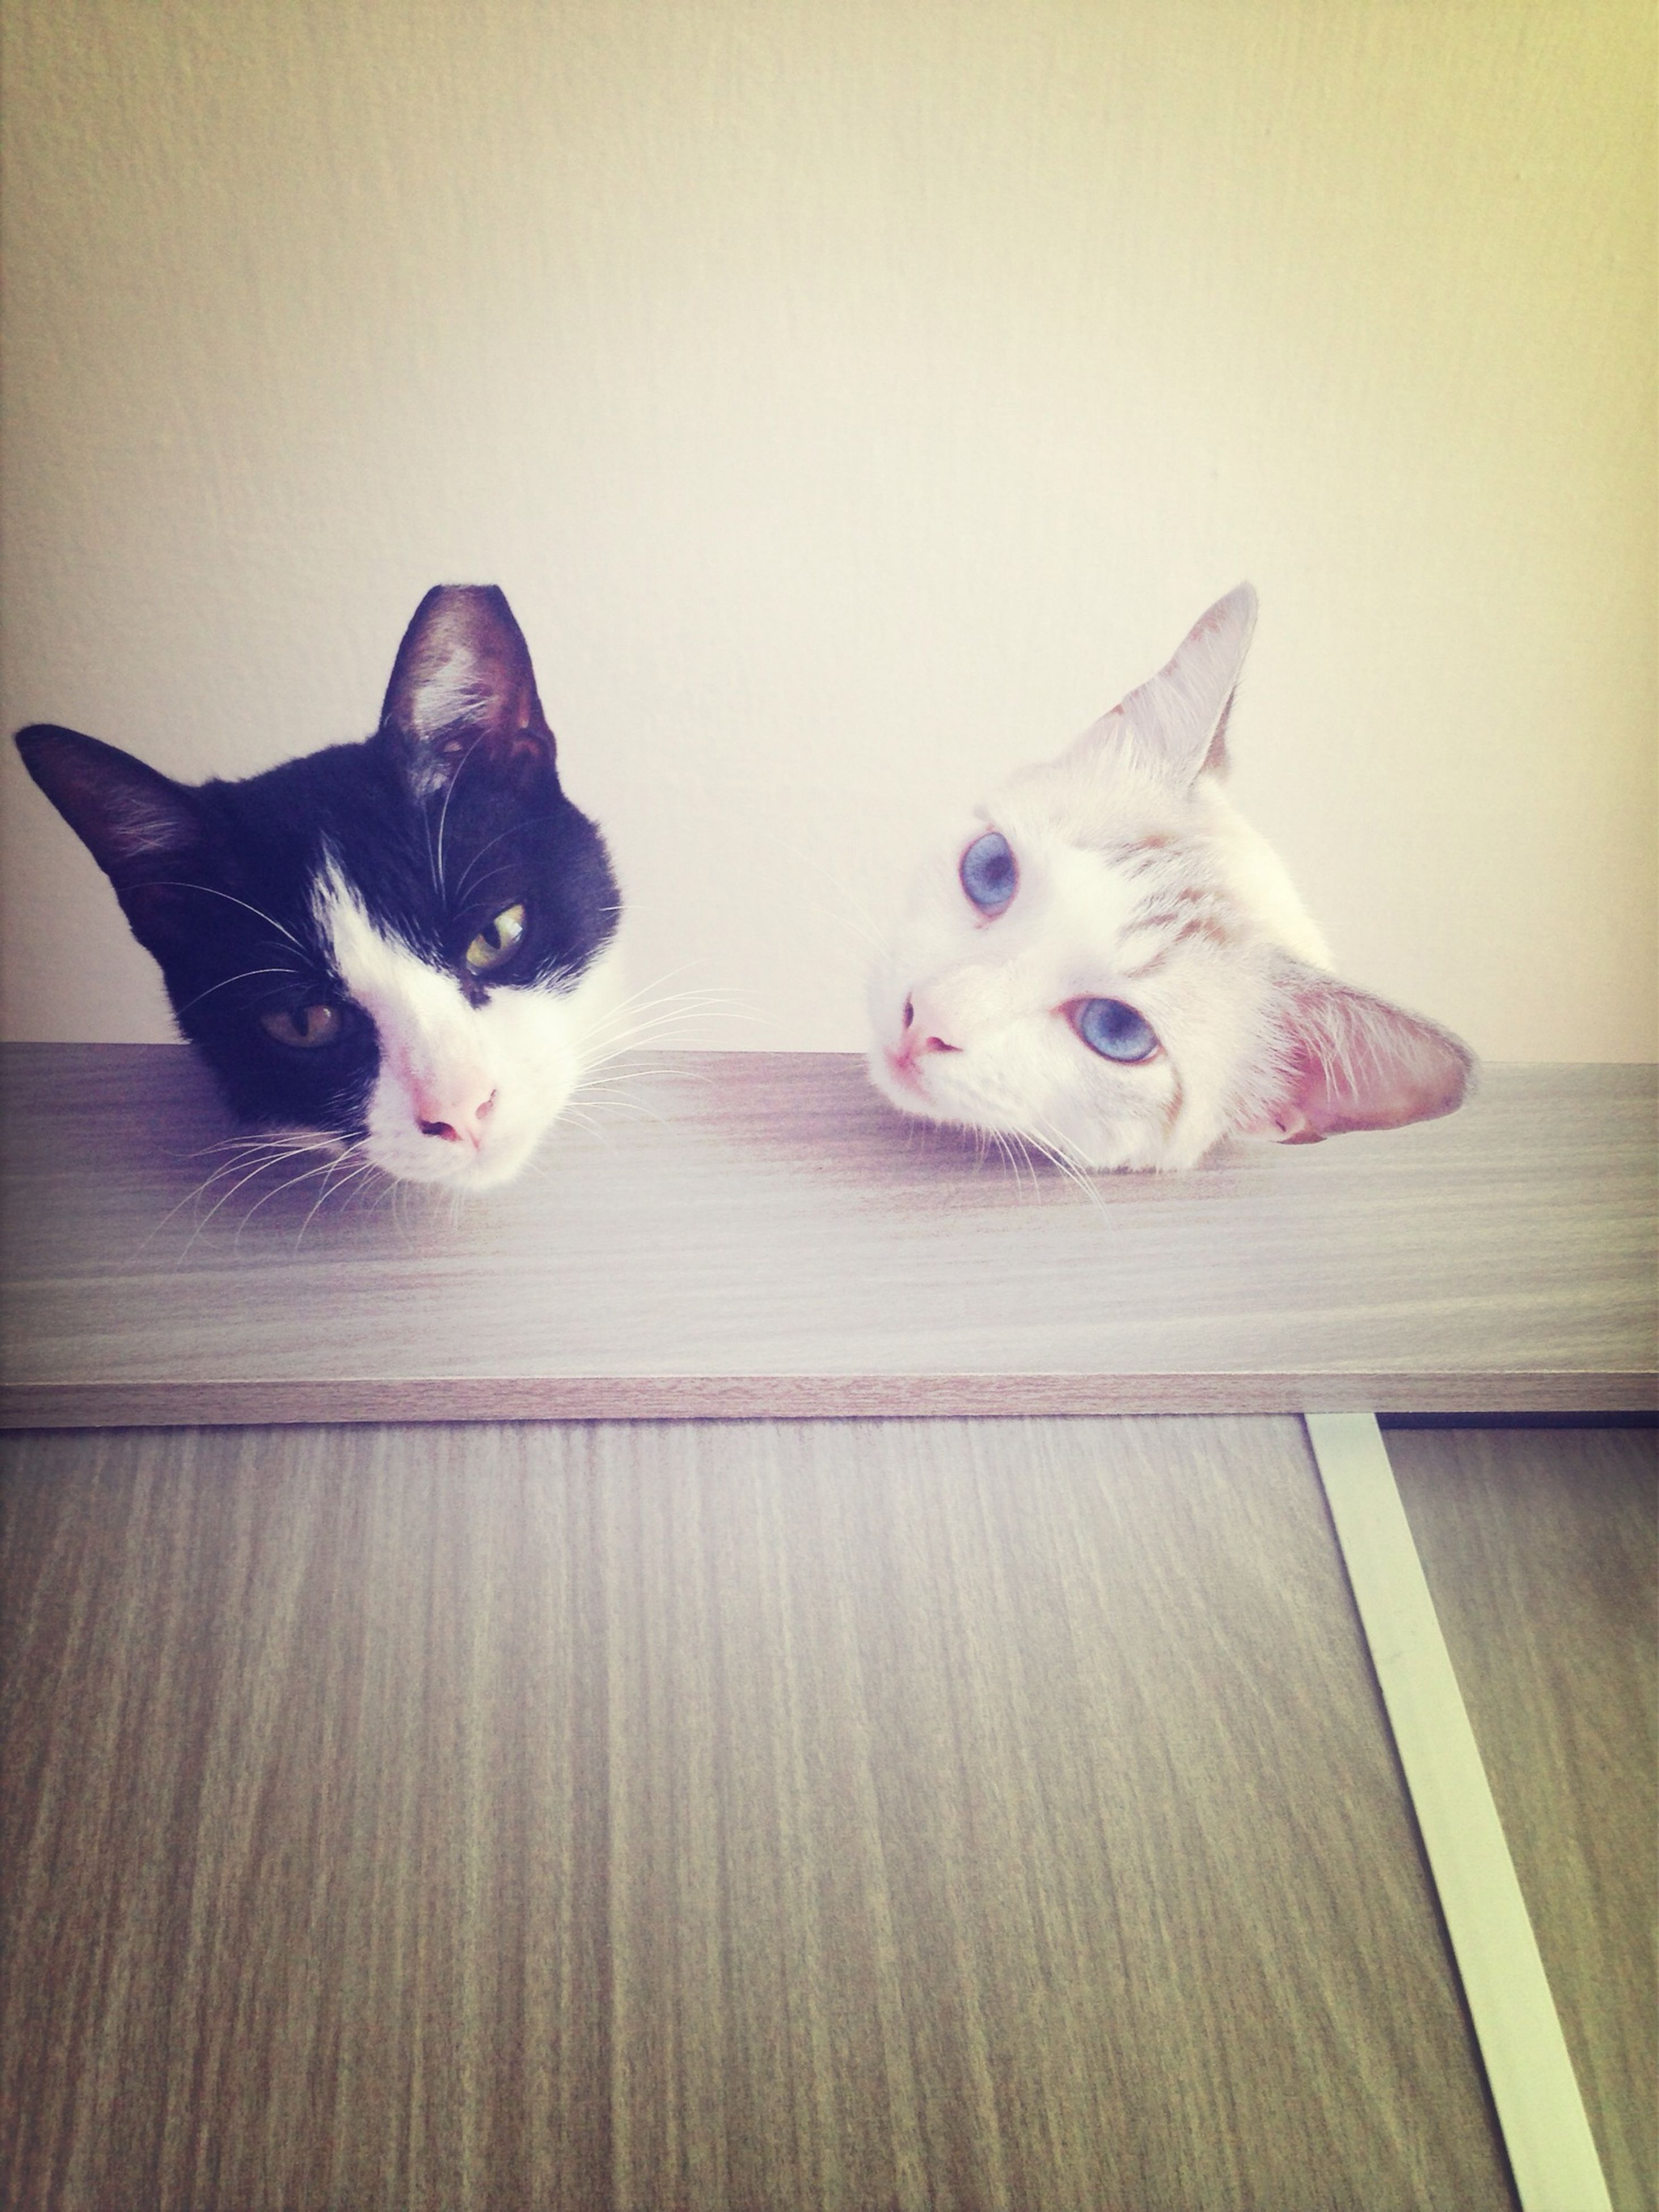 domestic animals, indoors, pets, animal themes, domestic cat, one animal, mammal, cat, feline, looking at camera, portrait, home interior, two animals, relaxation, flooring, table, white color, no people, floor, wall - building feature